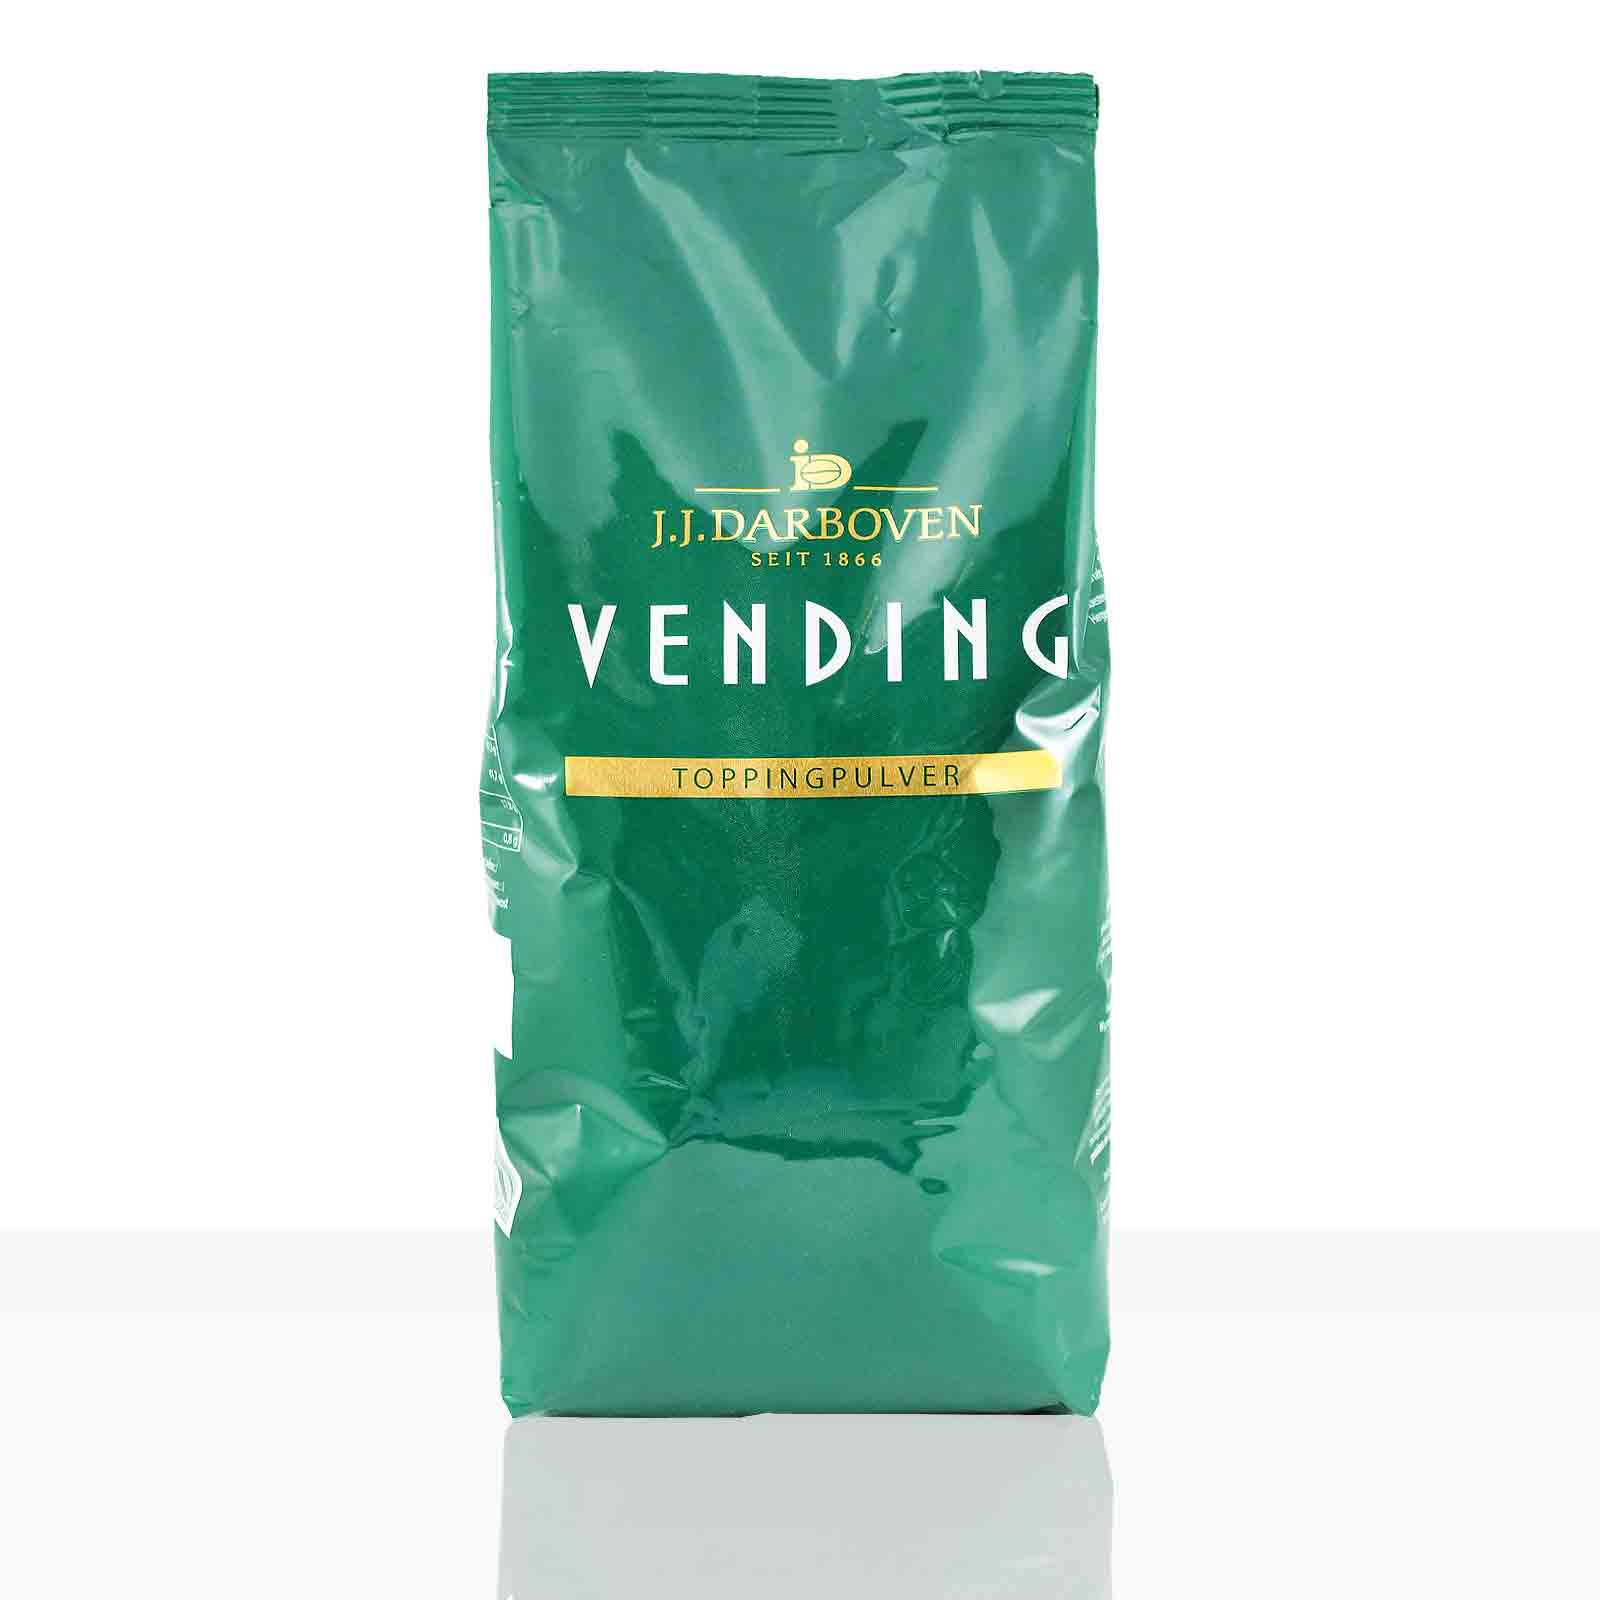 Darboven Vending Toppingpulver 10 x 1kg, Milchpulver Topping